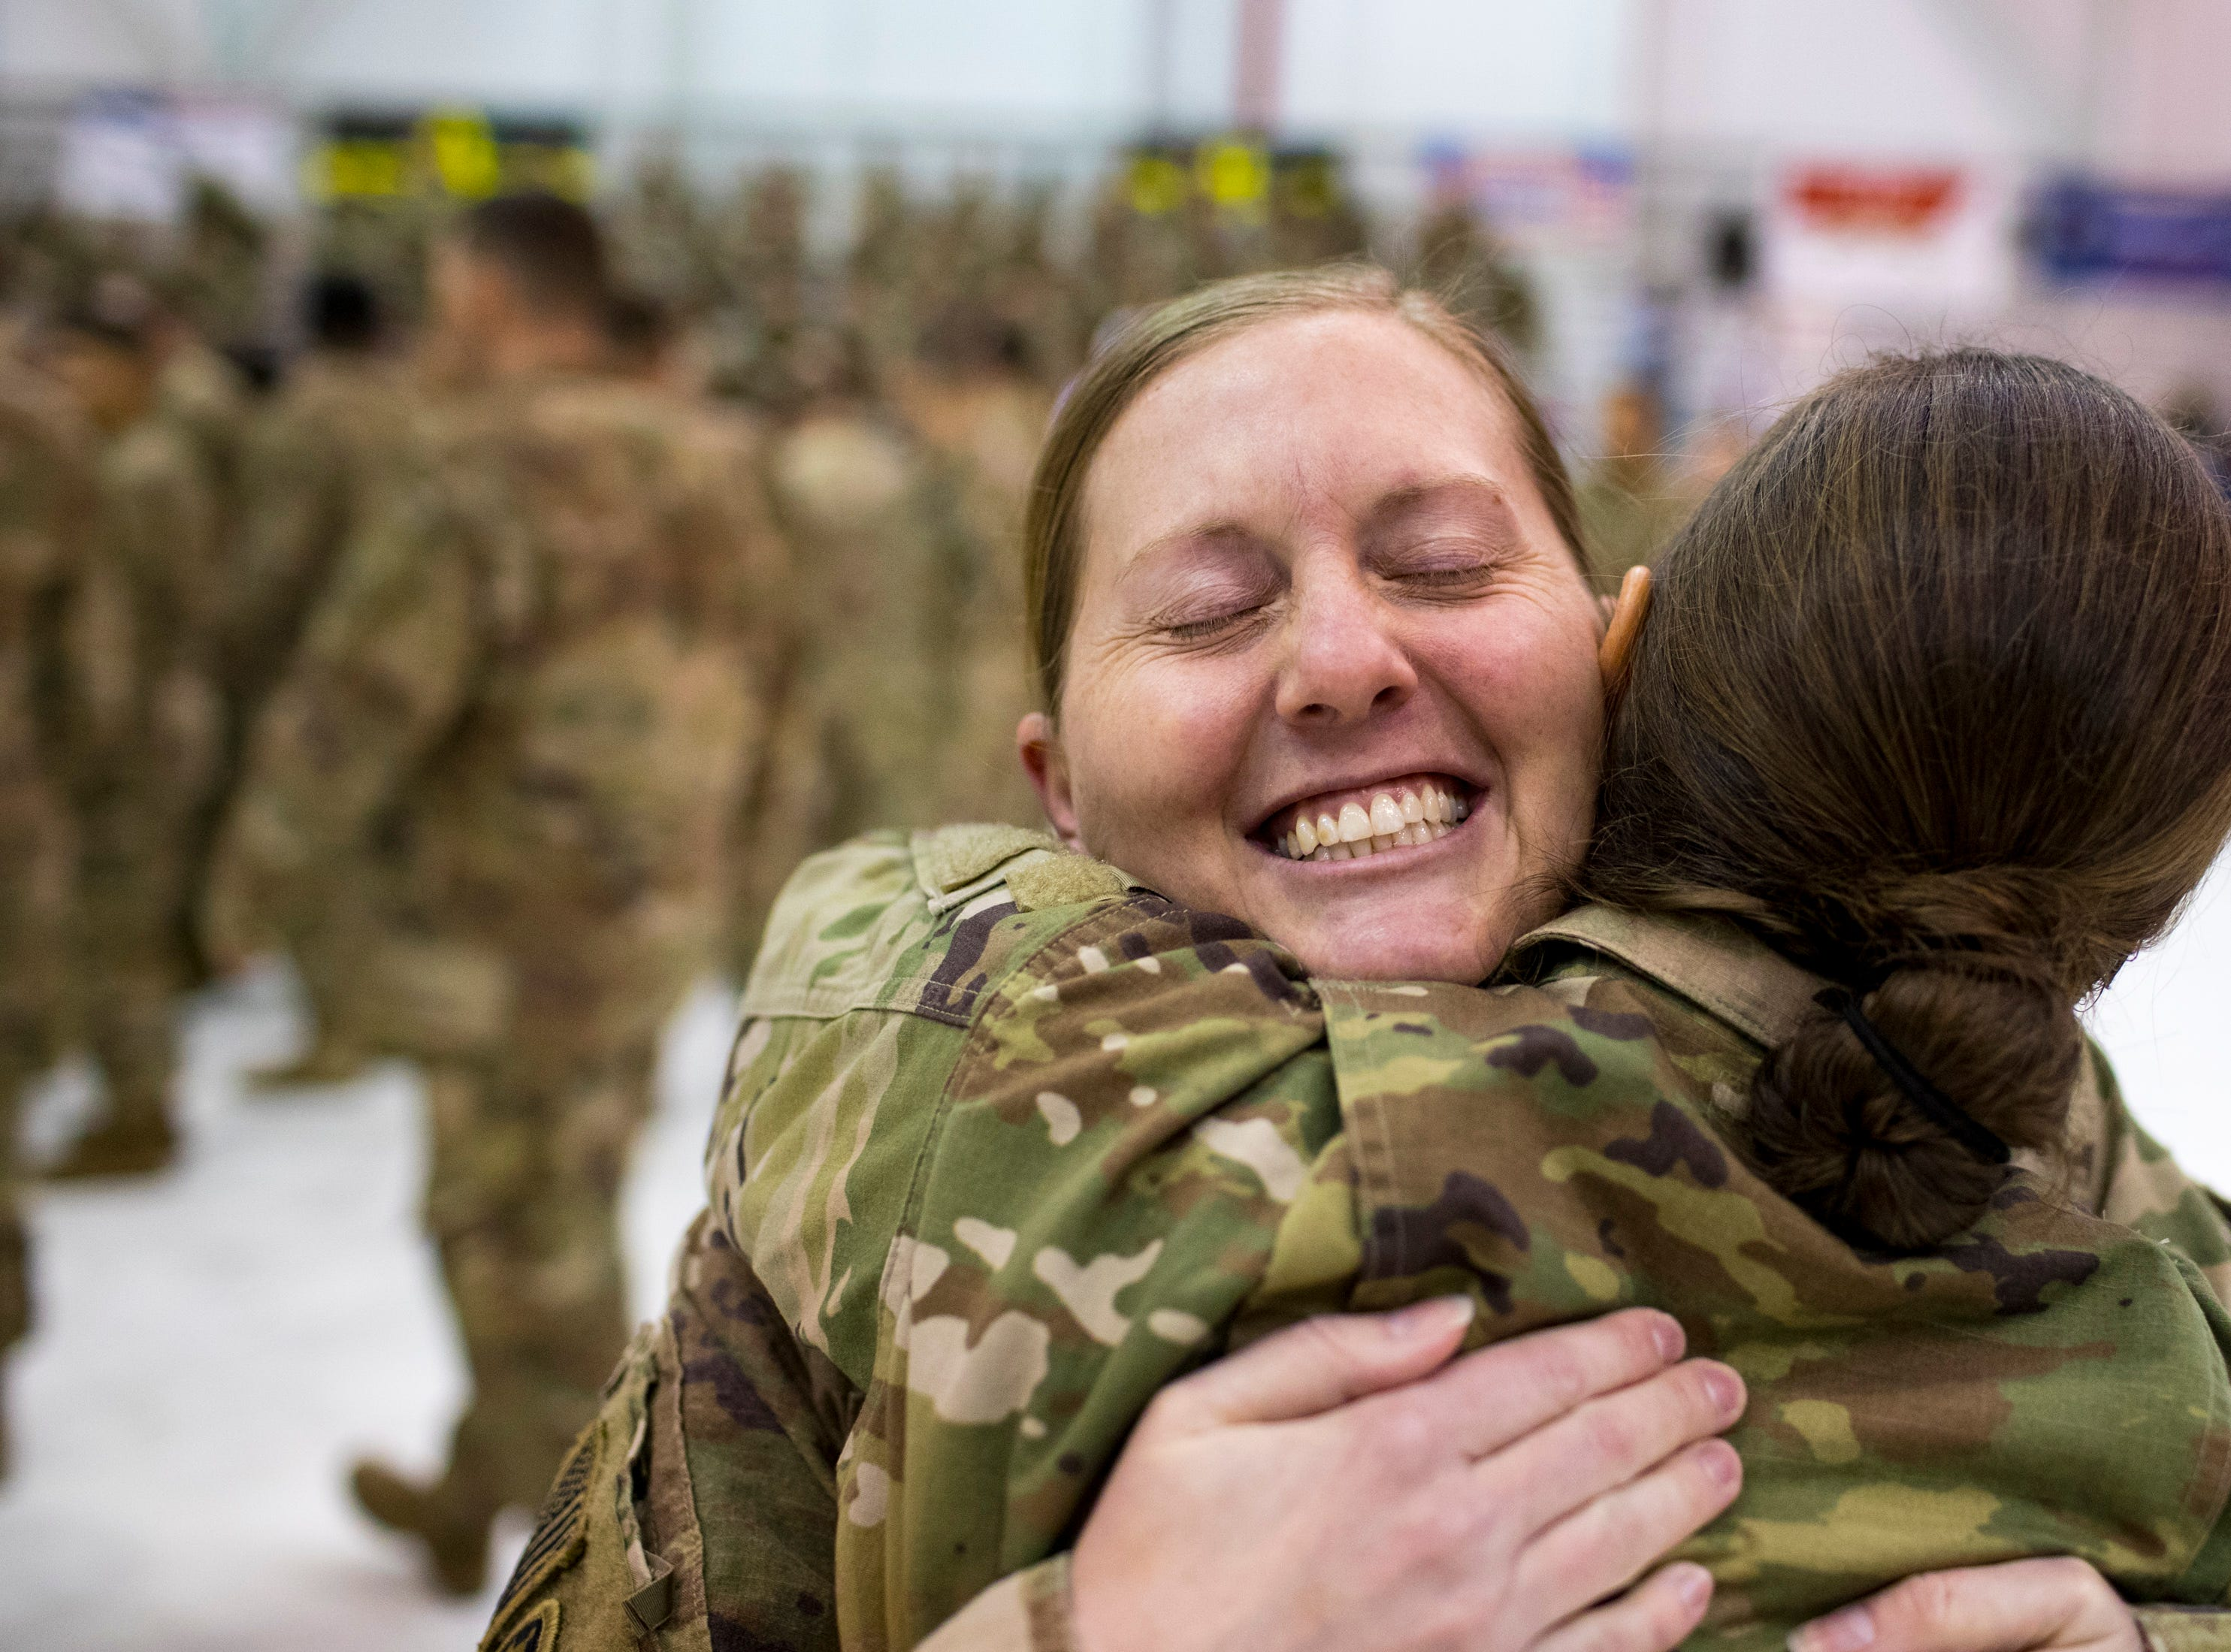 Capt. Dawn Moffett hugs Capt. Mary Jocelyn during the welcome home ceremony for the 2nd Battalion, 44th Air Defense Artillery Regiment and 101st Airborne Division at Fort Campbell in the early hours of Monday, Nov. 19, 2018. The soldiers were returning from a 9-month deployment in Afghanistan.